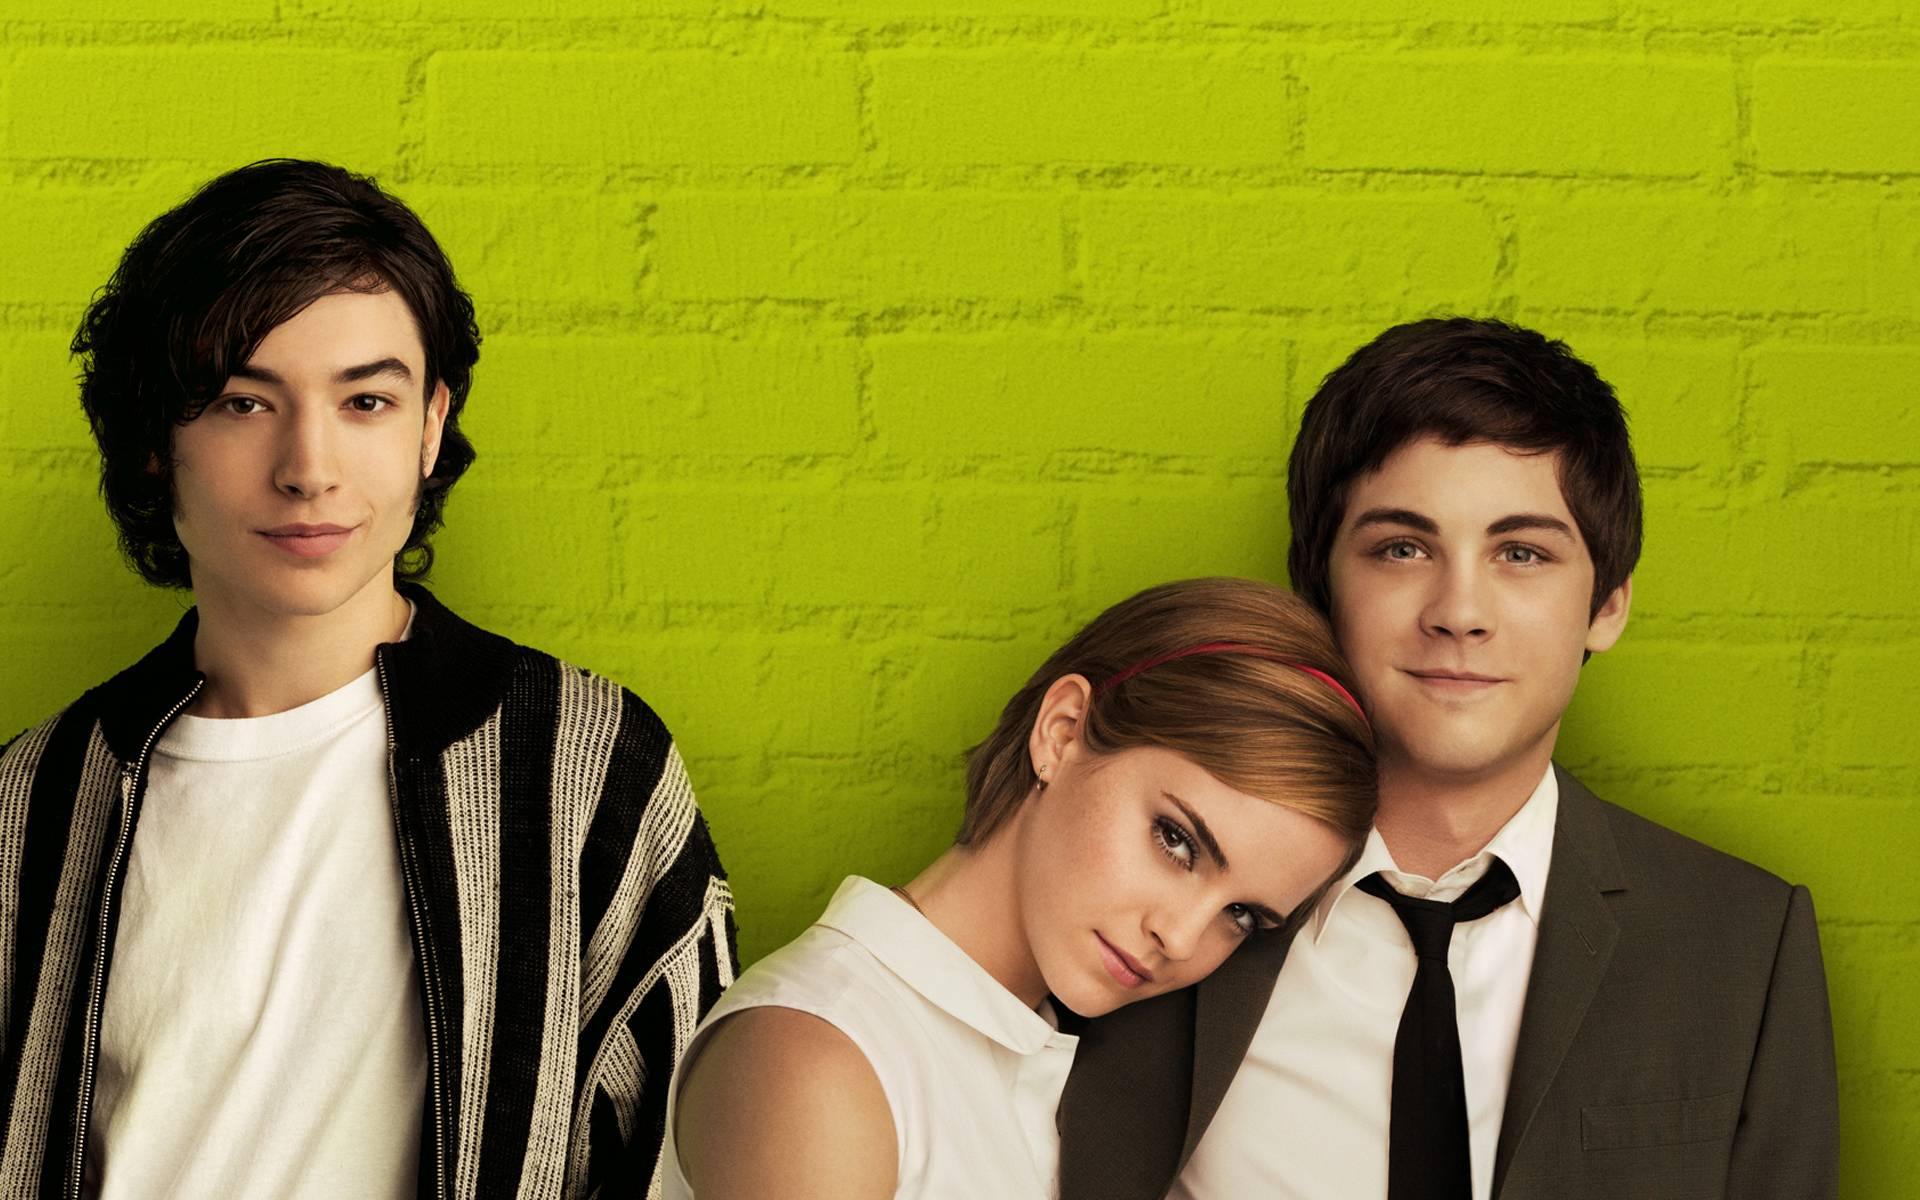 image The perks of being a wallflower 2